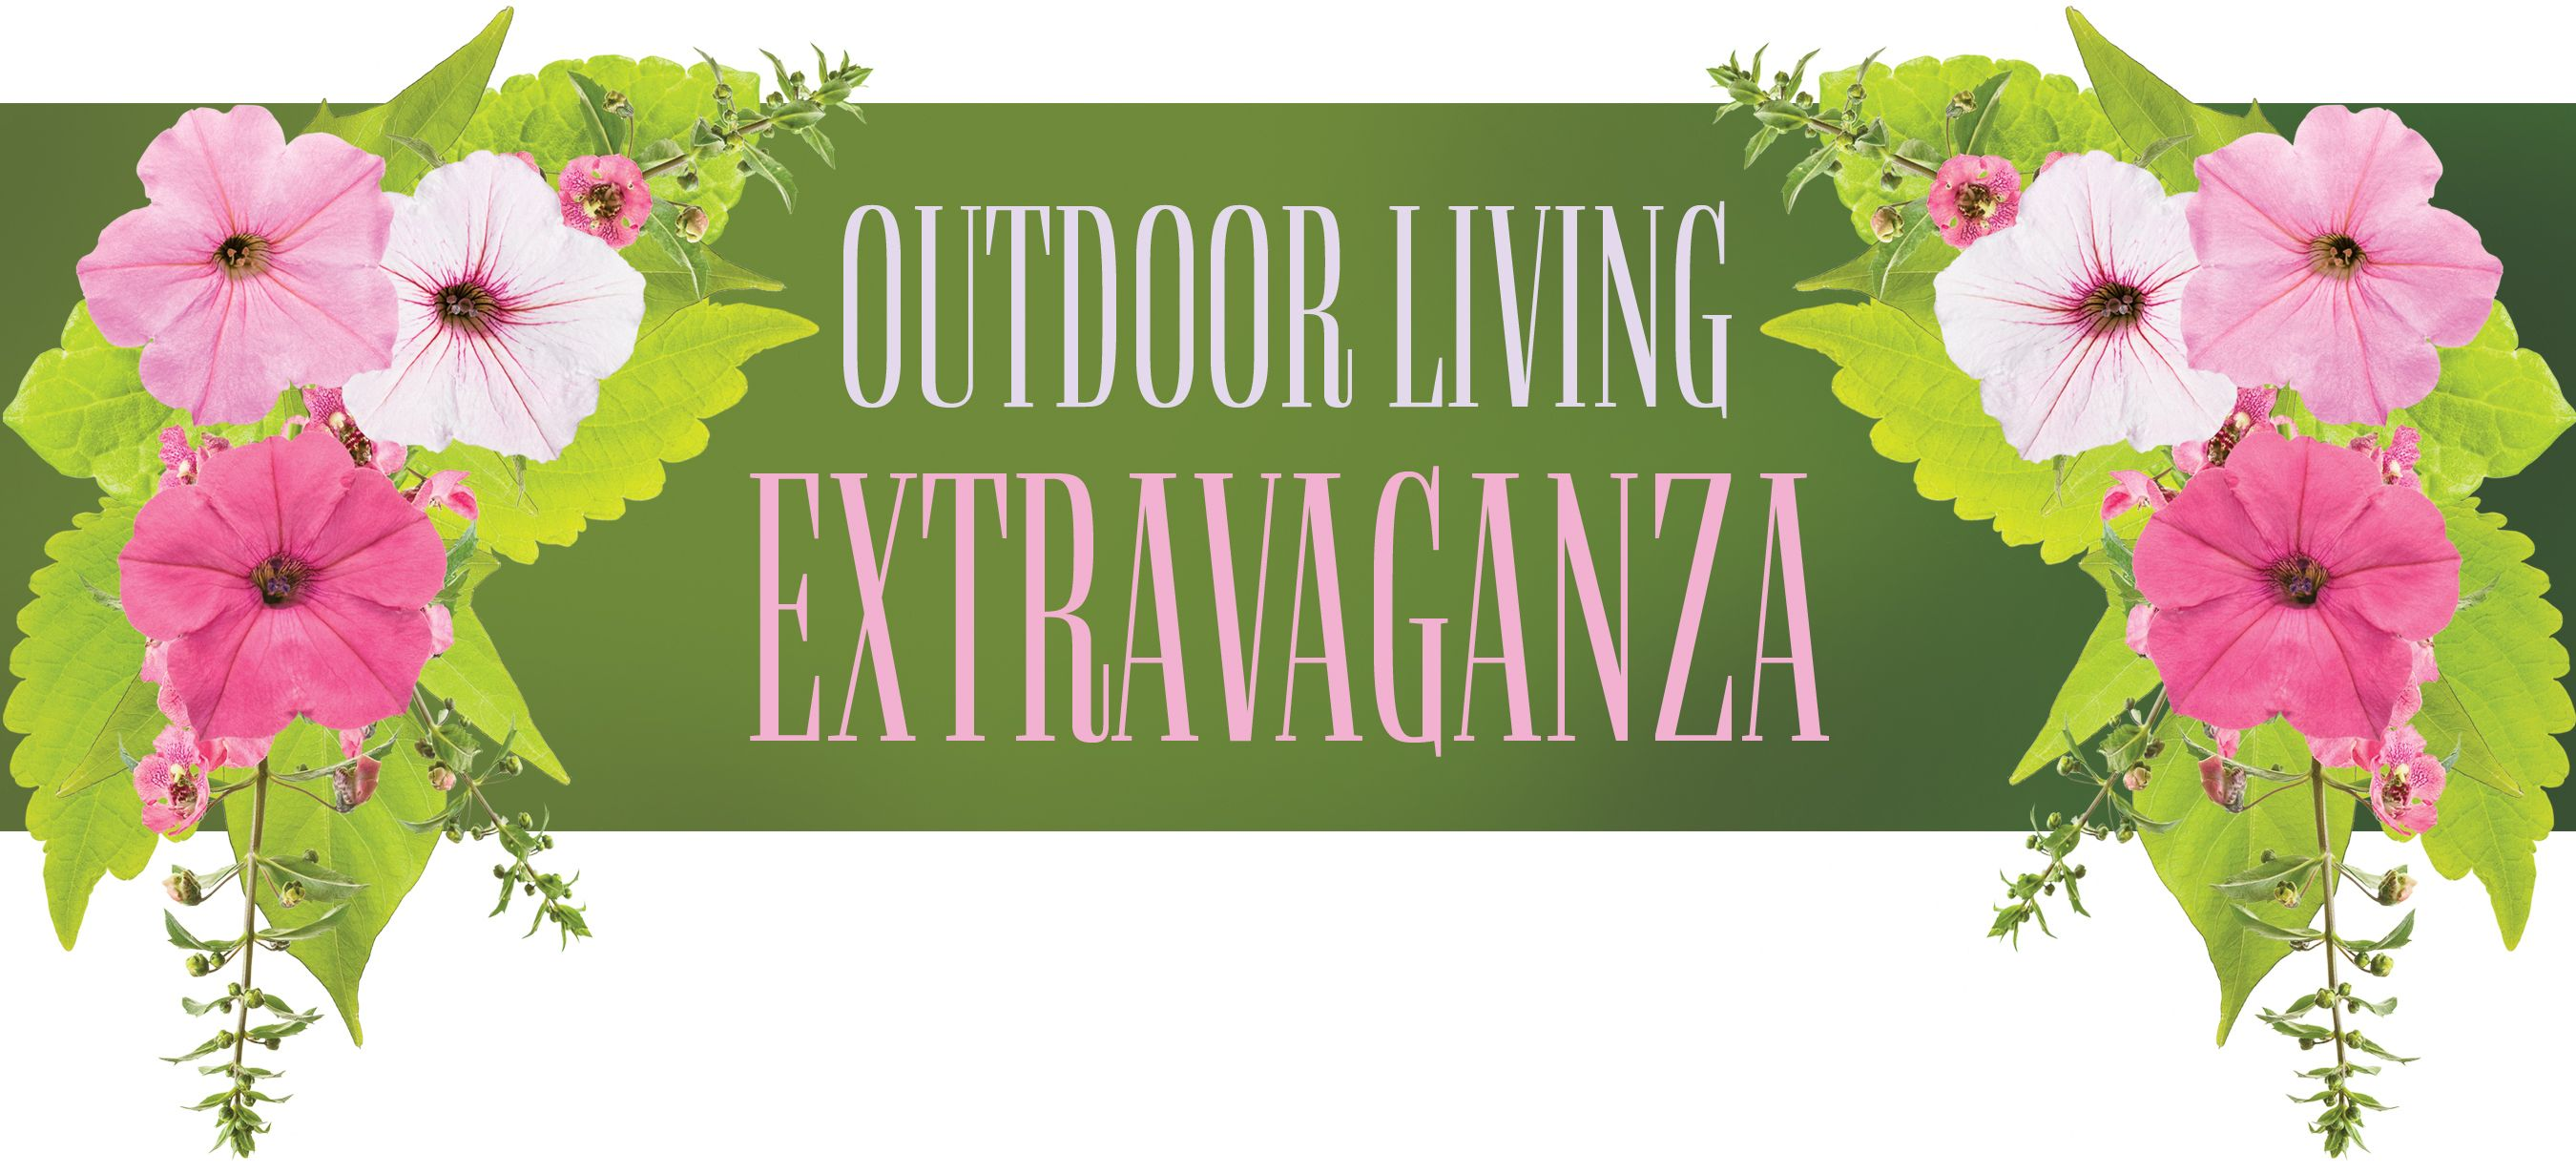 Detroit, Michigan Outdoor Living Extravaganza | Proven Winners